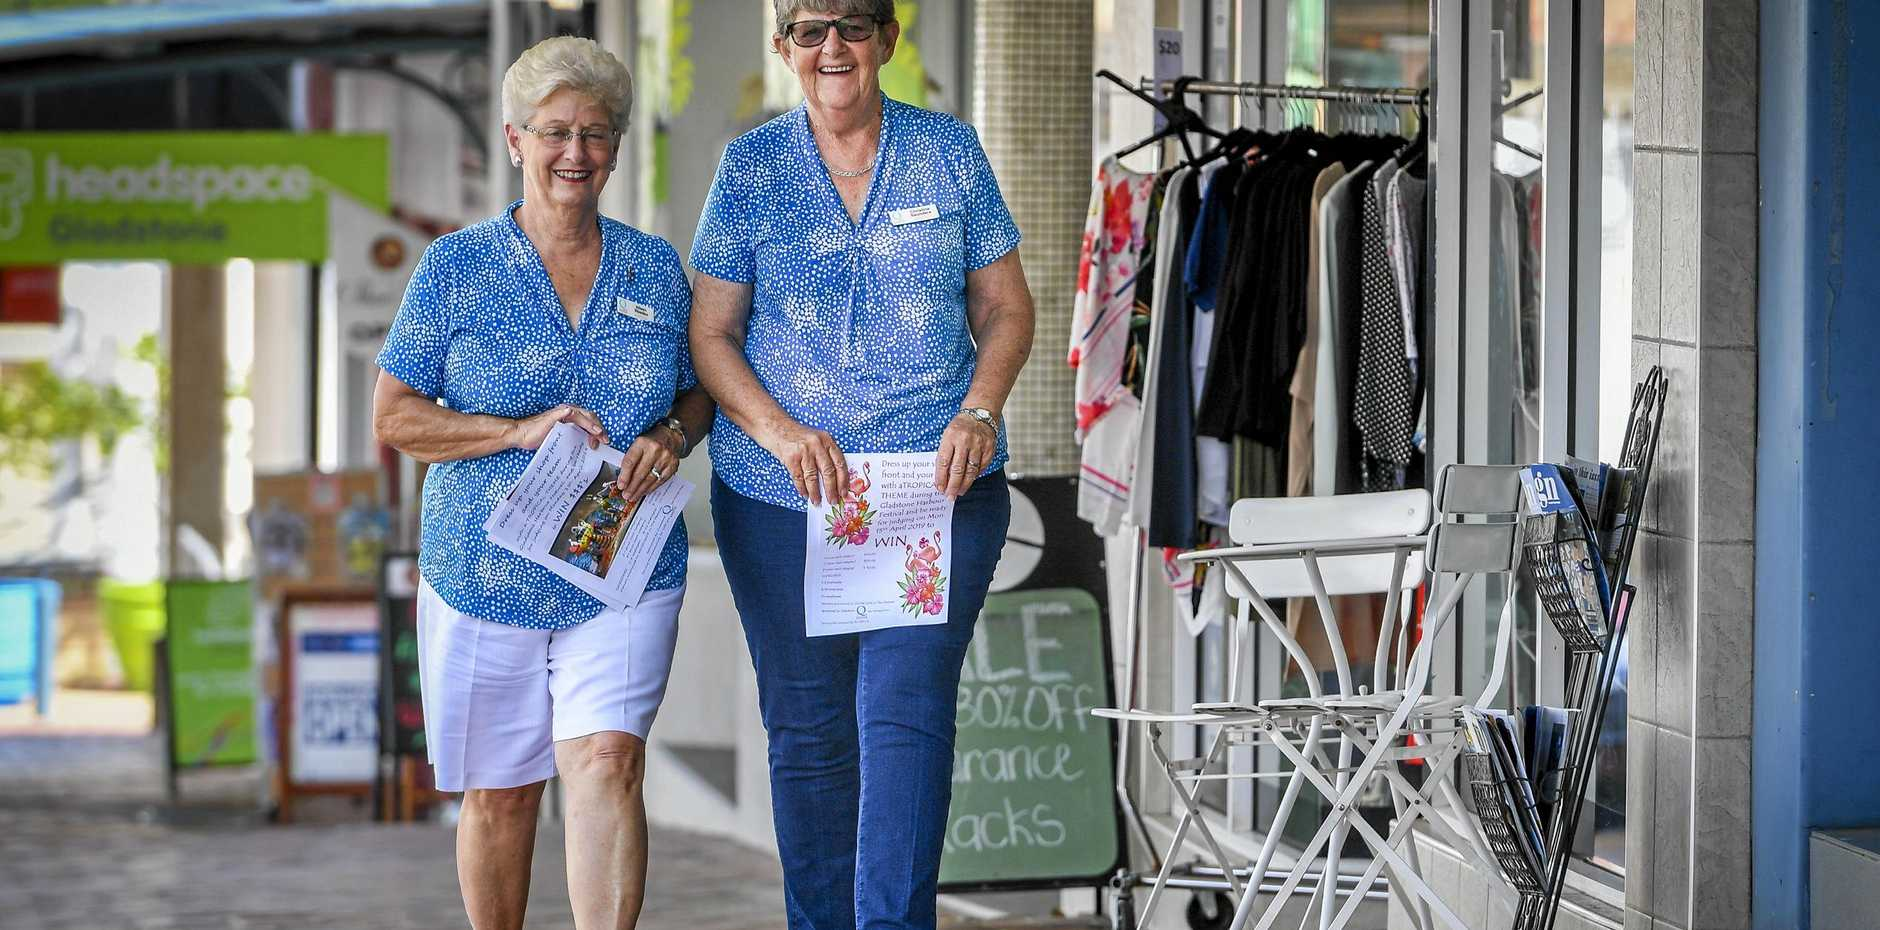 QUOTA Club of Gladstone secretary Aileen Weeden and club president Christine Saunders have been distributing flyers for Tropical Wednesday on Goondoon Street.